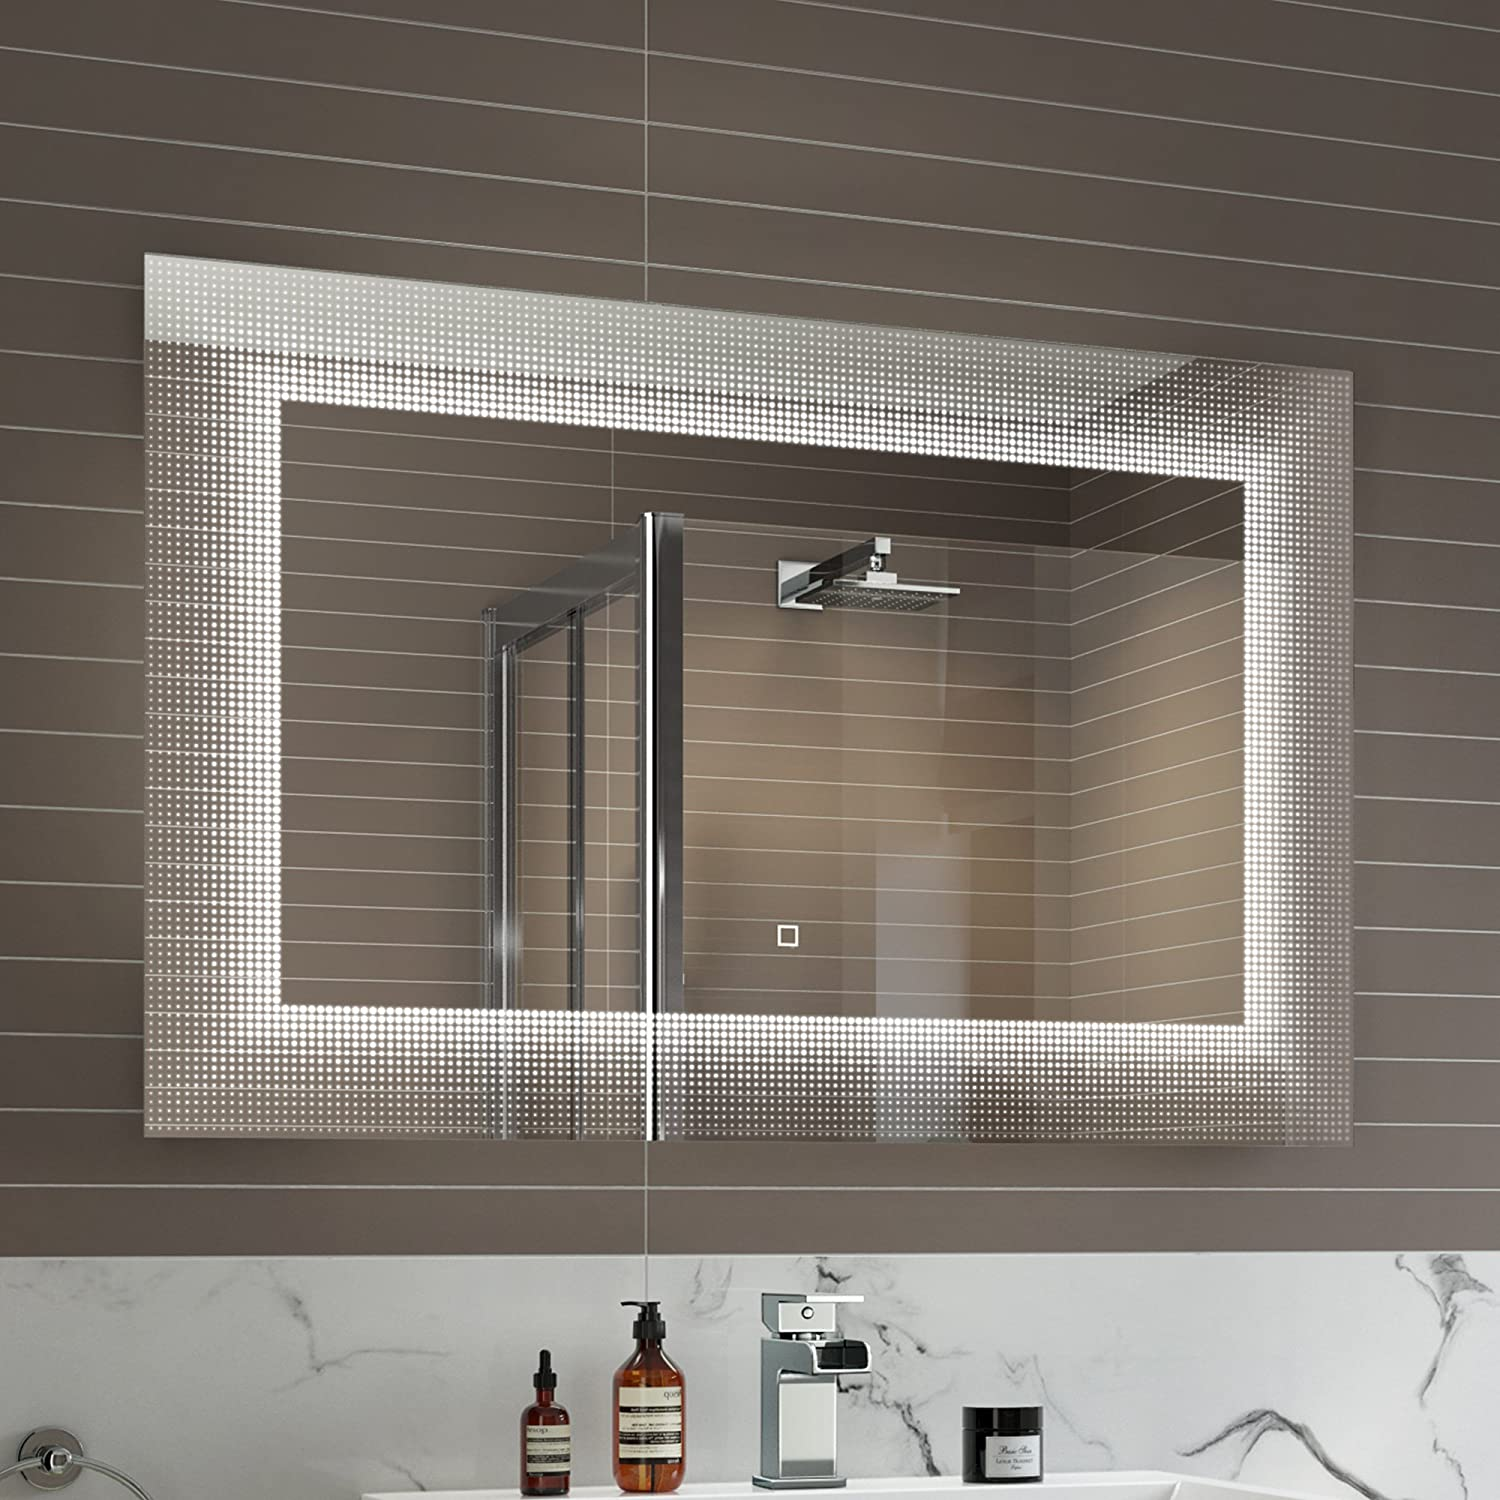 Lighted Bathroom Wall Mirror Large: Large Illuminated LED Bathroom Mirror Fashion Light Sensor